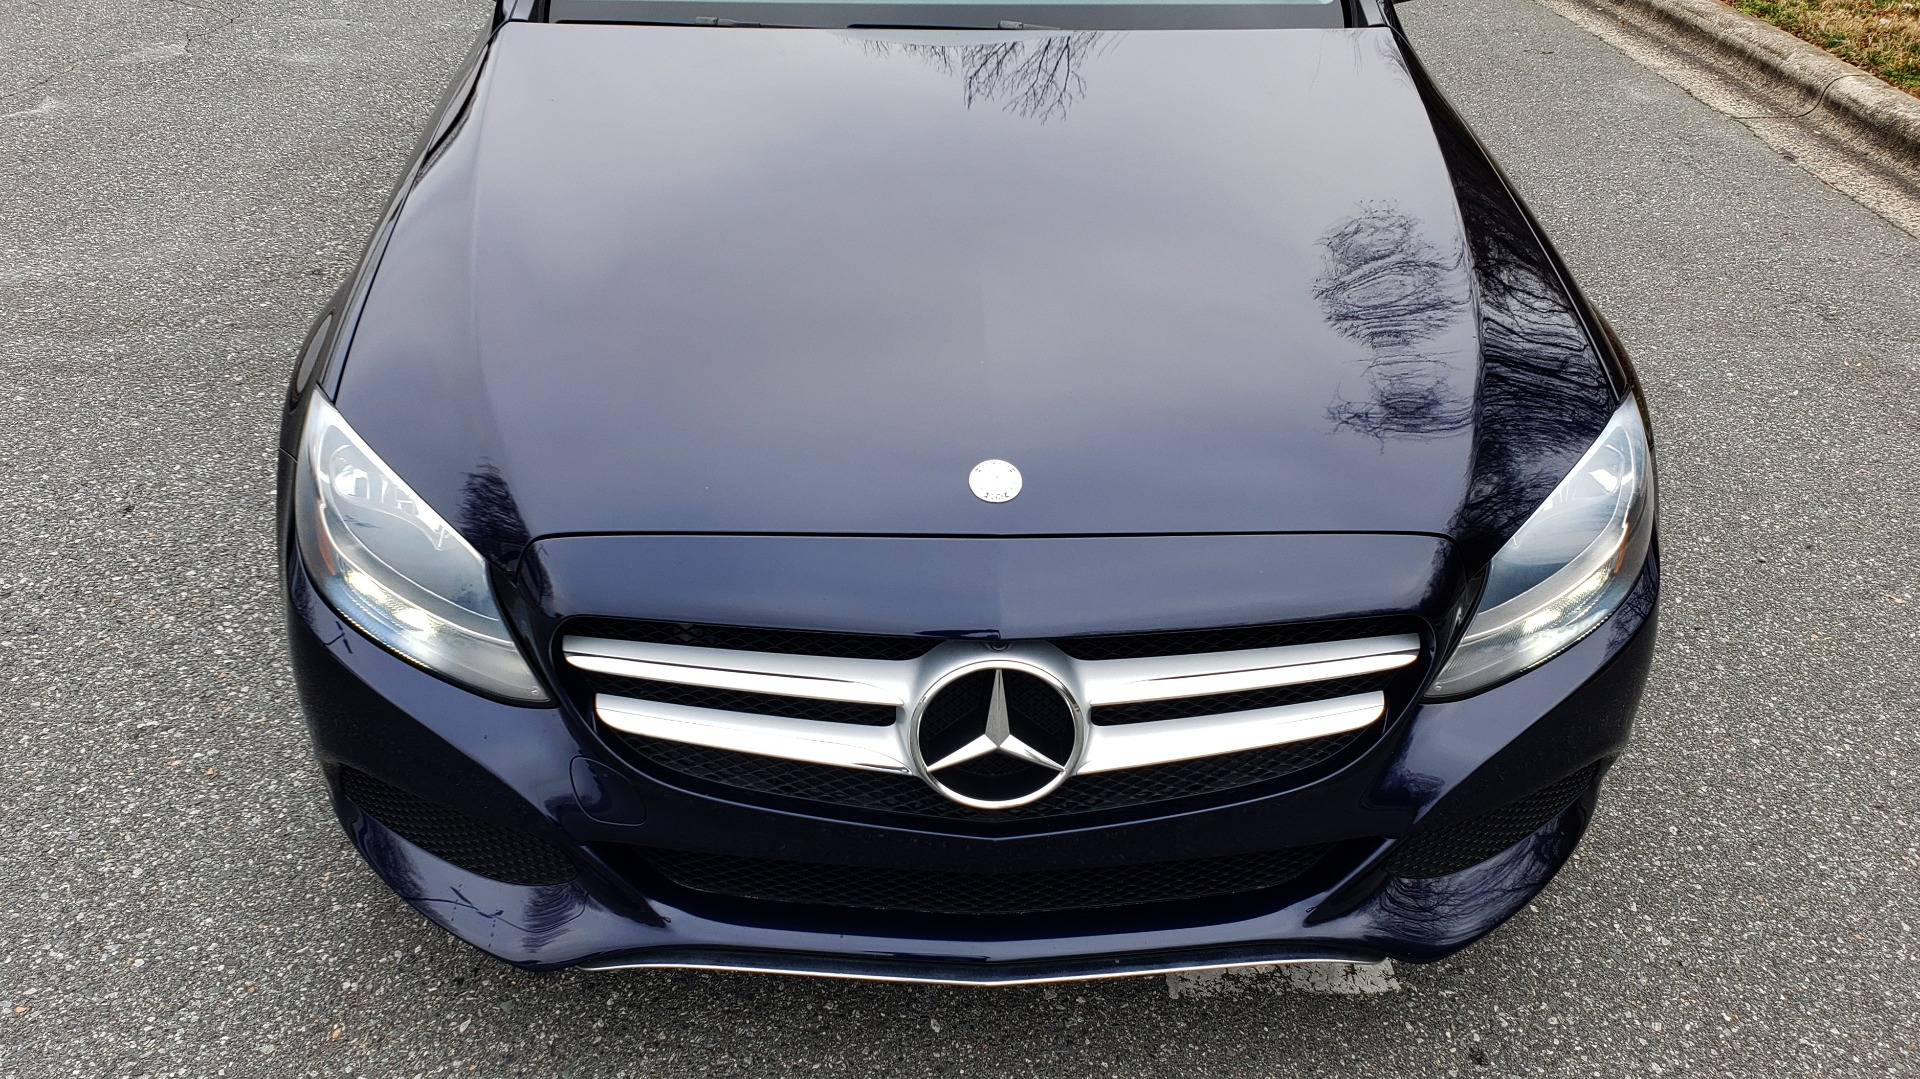 Used 2016 Mercedes-Benz C-CLASS C 300 / PREM PKG / PANO-ROOF / BSA / HTD STS / REARVIEW for sale Sold at Formula Imports in Charlotte NC 28227 13